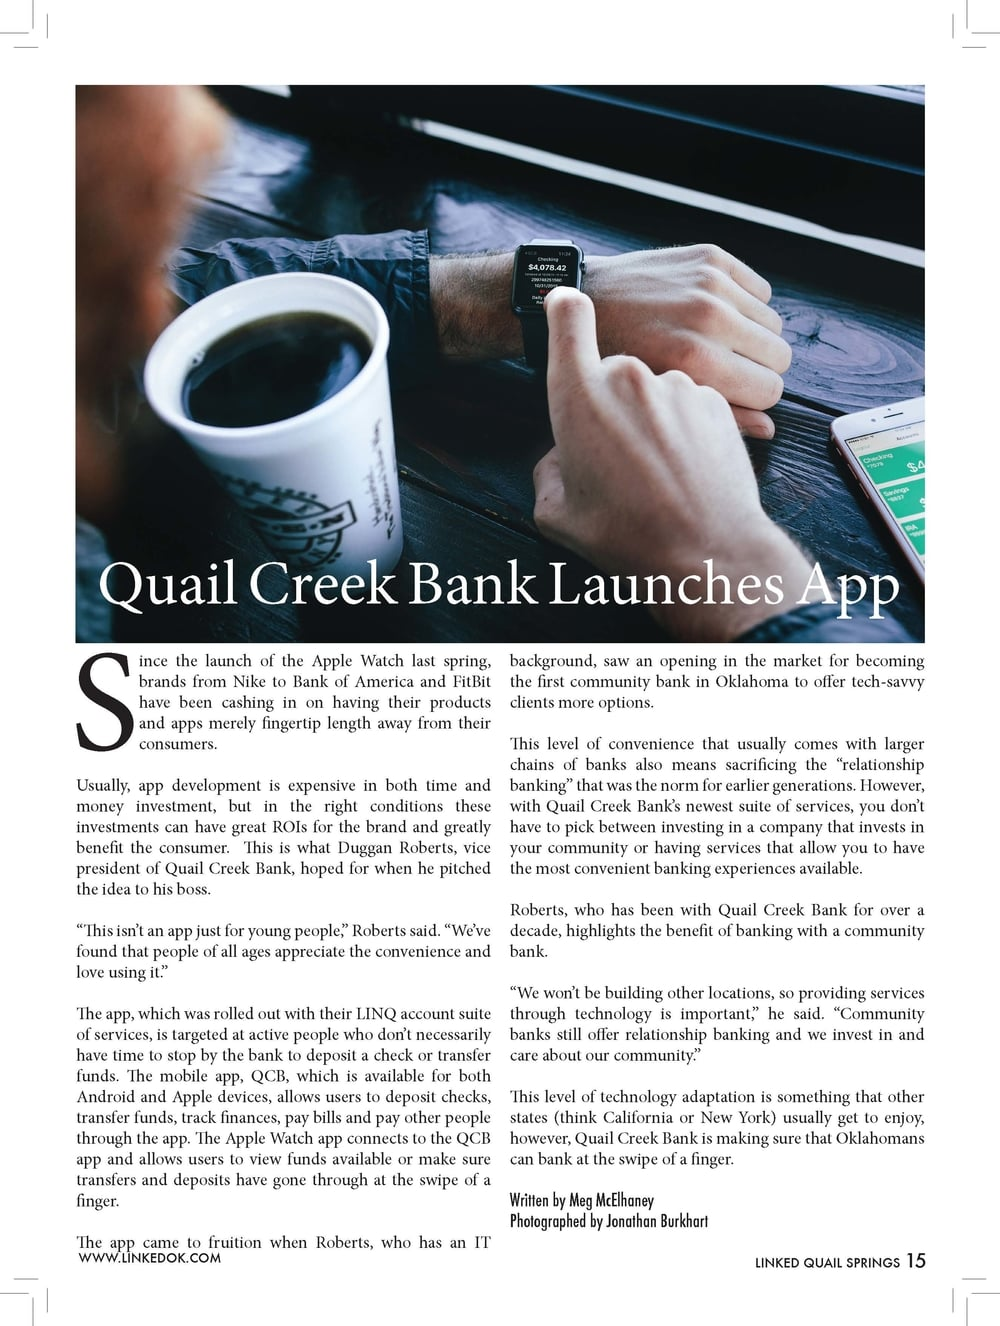 """Quail Creek Bank Launches App  Since the launch of the Apple Watch last spring,  brands from Nike to Bank of America and FitBit  have been cashing in on having their products  and apps merely fingertip length away from their  consumers.  Usually, app development is expensive in both time and  money investment, but in the right conditions these  investments can have great ROIs for the brand and greatly  benefit the consumer. This is what Duggan Roberts, vice  president of Quail Creek Bank, hoped for when he pitched  the idea to his boss.  """"This isn't an app just for young people,"""" Roberts said. """"We've  found that people of all ages appreciate the convenience and  love using it.""""  The app, which was rolled out with their LINQ account suite  of services, is targeted at active people who don't necessarily  have time to stop by the bank to deposit a check or transfer  funds. The mobile app, QCB, which is available for both  Android and Apple devices, allows users to deposit checks,  transfer funds, track finances, pay bills and pay other people  through the app. The Apple Watch app connects to the QCB  app and allows users to view funds available or make sure  transfers and deposits have gone through at the swipe of a  finger.  The app came to fruition when Roberts, who has an IT  background, saw an opening in the market for becoming  the first community bank in Oklahoma to offer tech-savvy  clients more options.  This level of convenience that usually comes with larger  chains of banks also means sacrificing the """"relationship  banking"""" that was the norm for earlier generations. However,  with Quail Creek Bank's newest suite of services, you don't  have to pick between investing in a company that invests in  your community or having services that allow you to have  the most convenient banking experiences available.  Roberts, who has been with Quail Creek Bank for over a  decade, highlights the benefit of banking with a community  bank.  """"We won't be building other locati"""